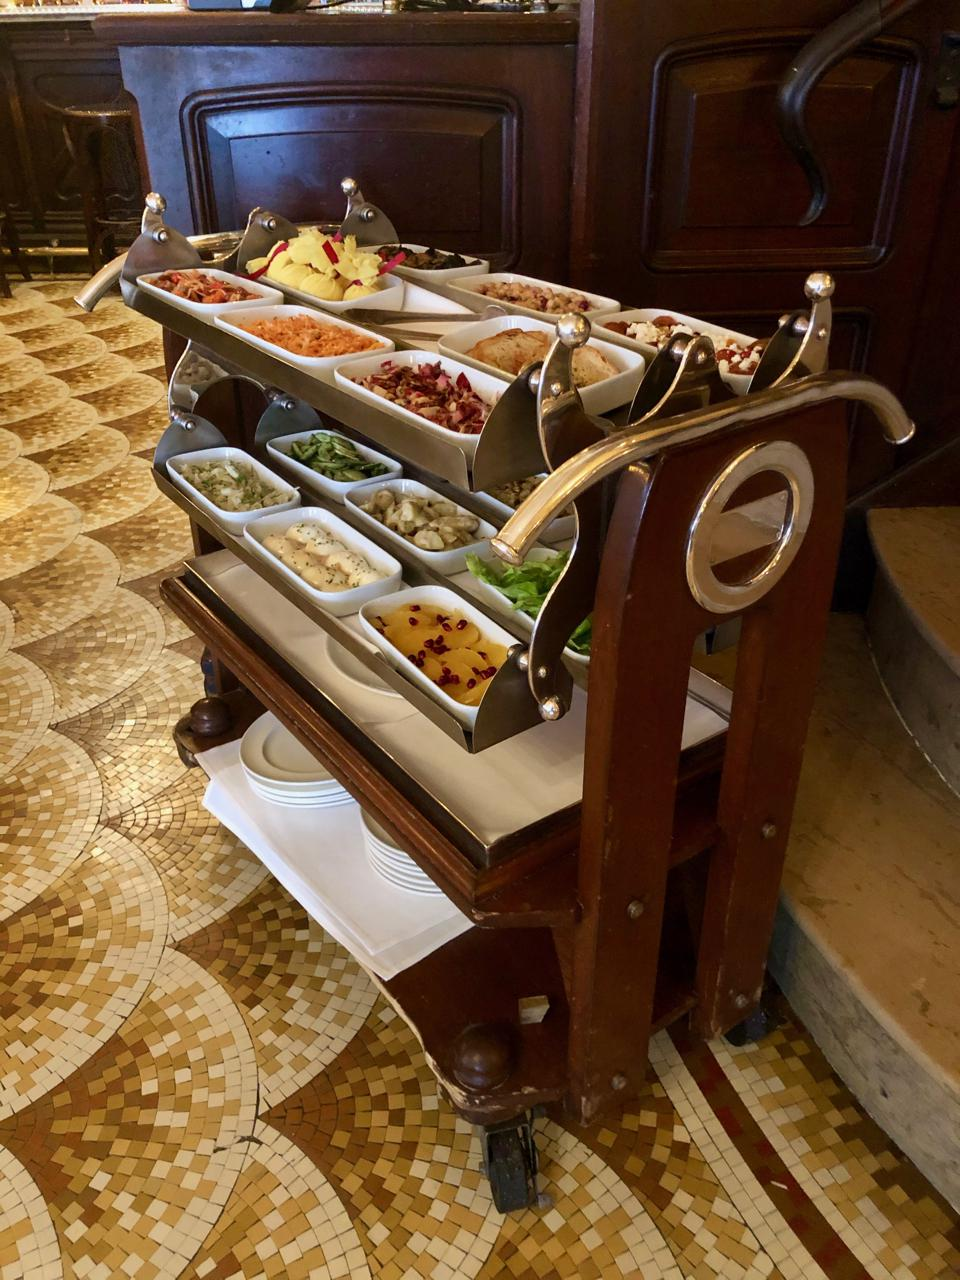 Only available at lunch on weekdays, the appetizer trolley is a hit at Orsay in New York.